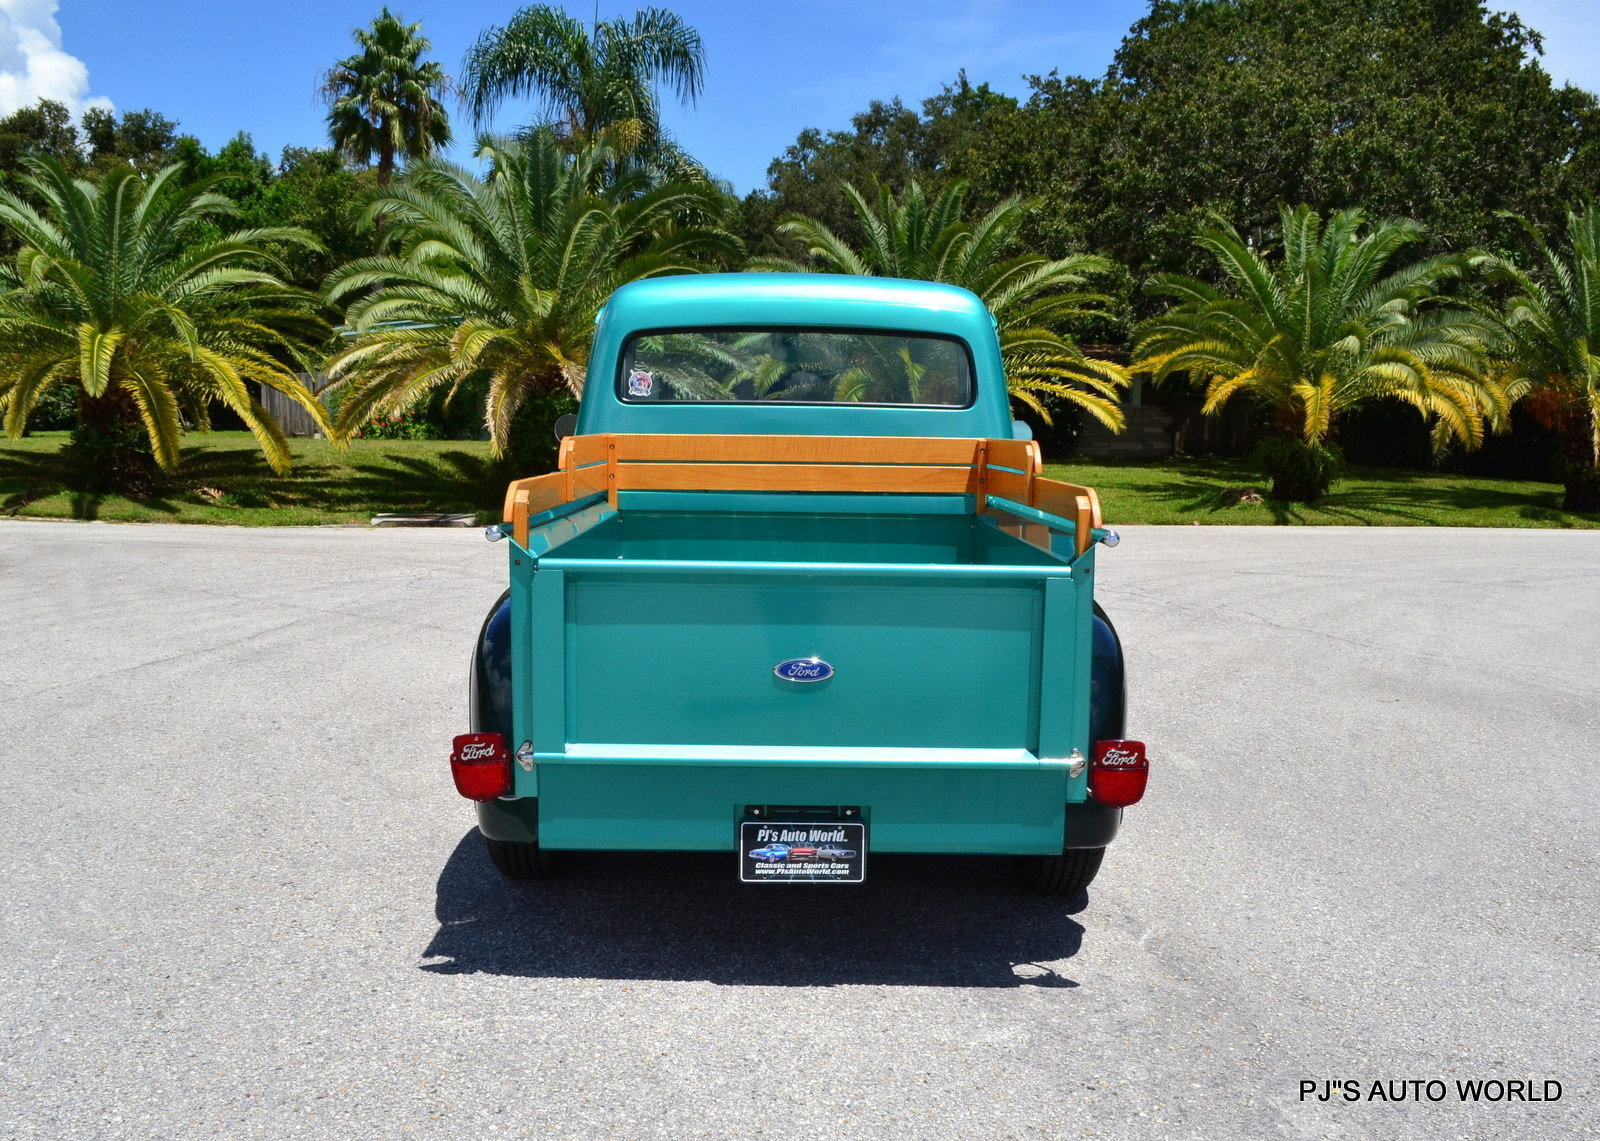 50s Ford F100 Is Your Car 1954 Custom Detail Truck In Austin Tx Source Pj S Auto World Classic Cars For Sale